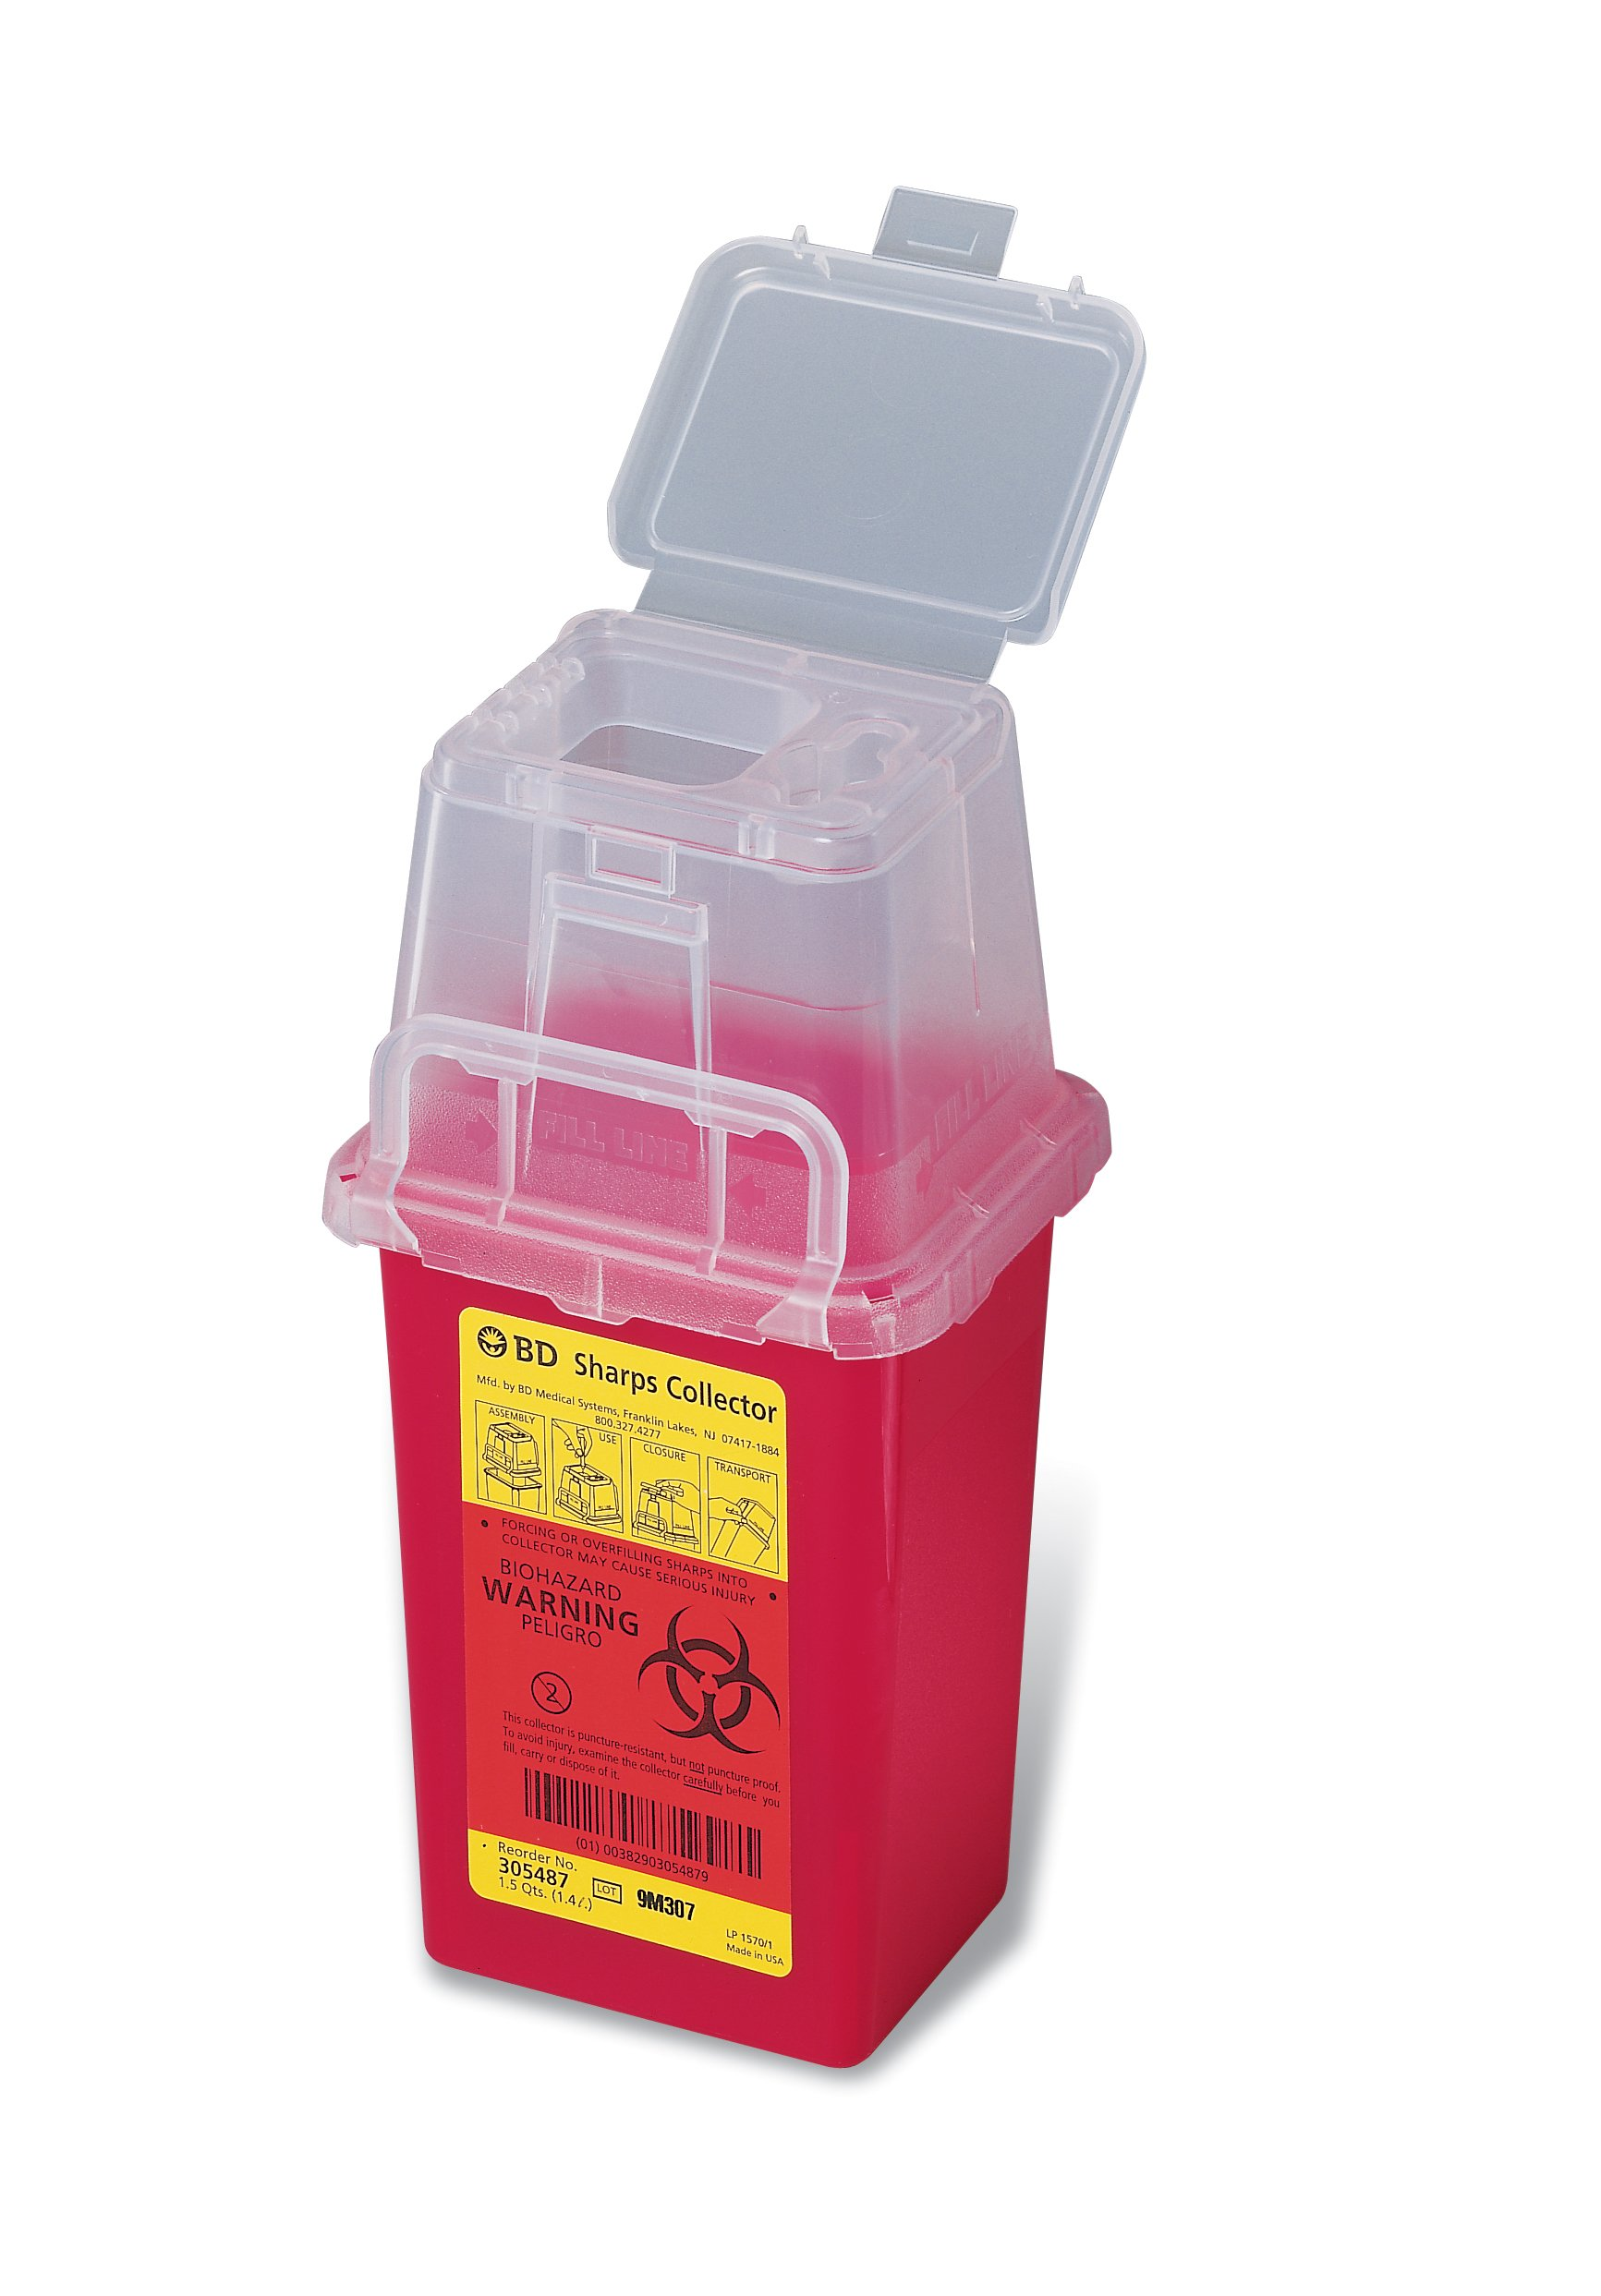 BD Medical Systems 305487 Nestable Sharps Collector, Natural Top with Dual Access, 9'' x 4.5'' x 4'' Size, Red (Pack of 36) by BD Medical Systems (Image #1)